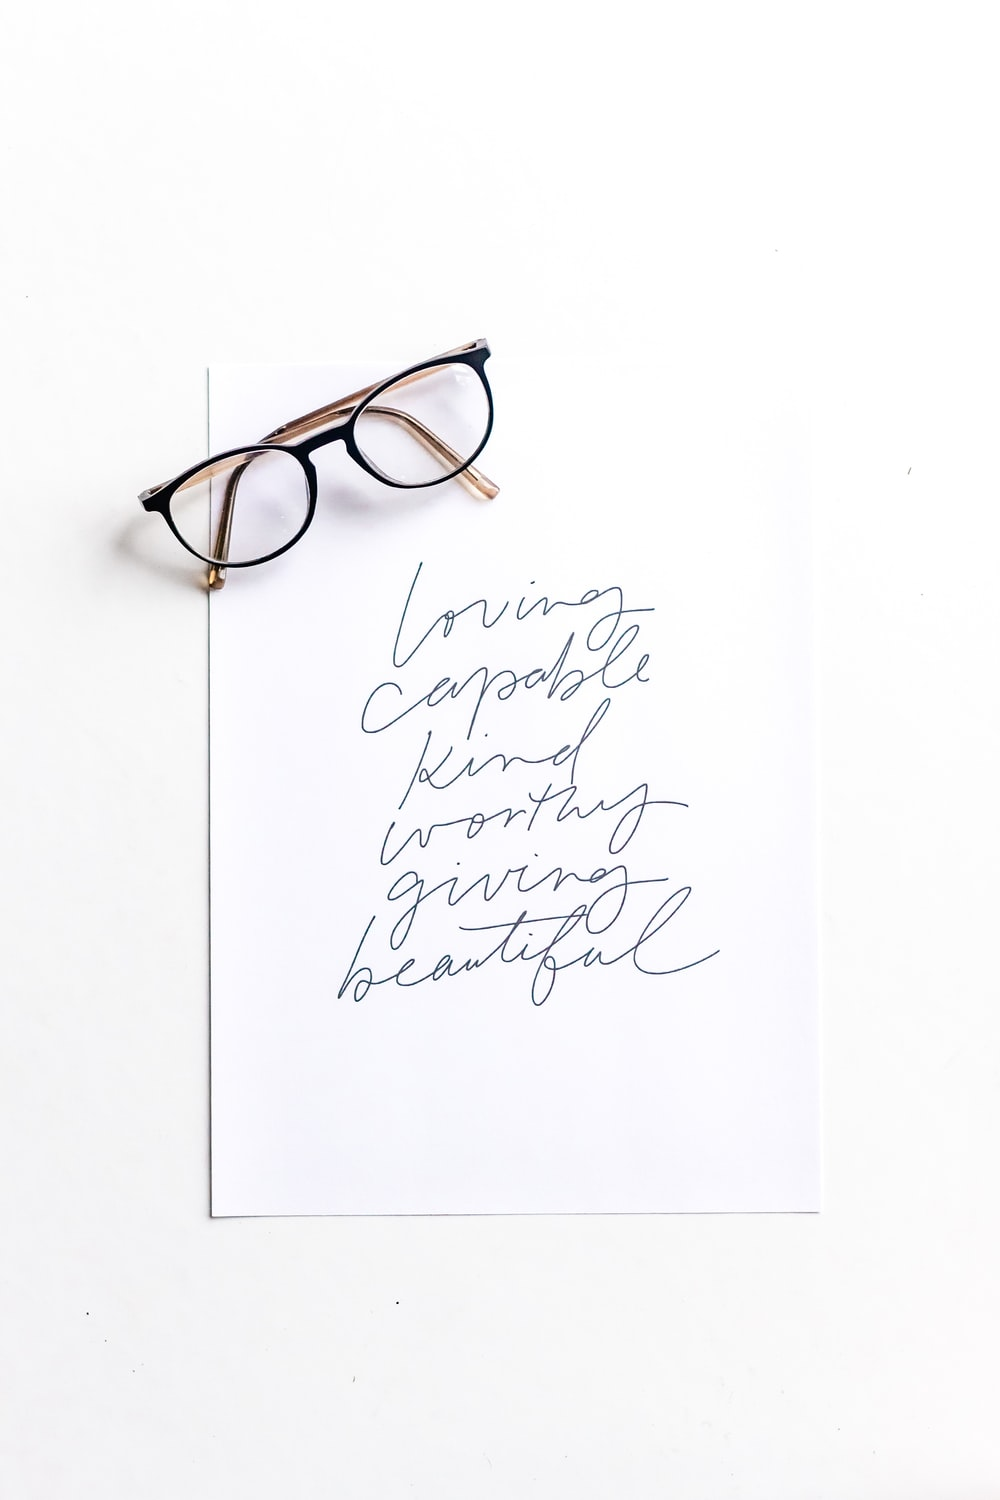 brown framed eyeglasses on white printer paper